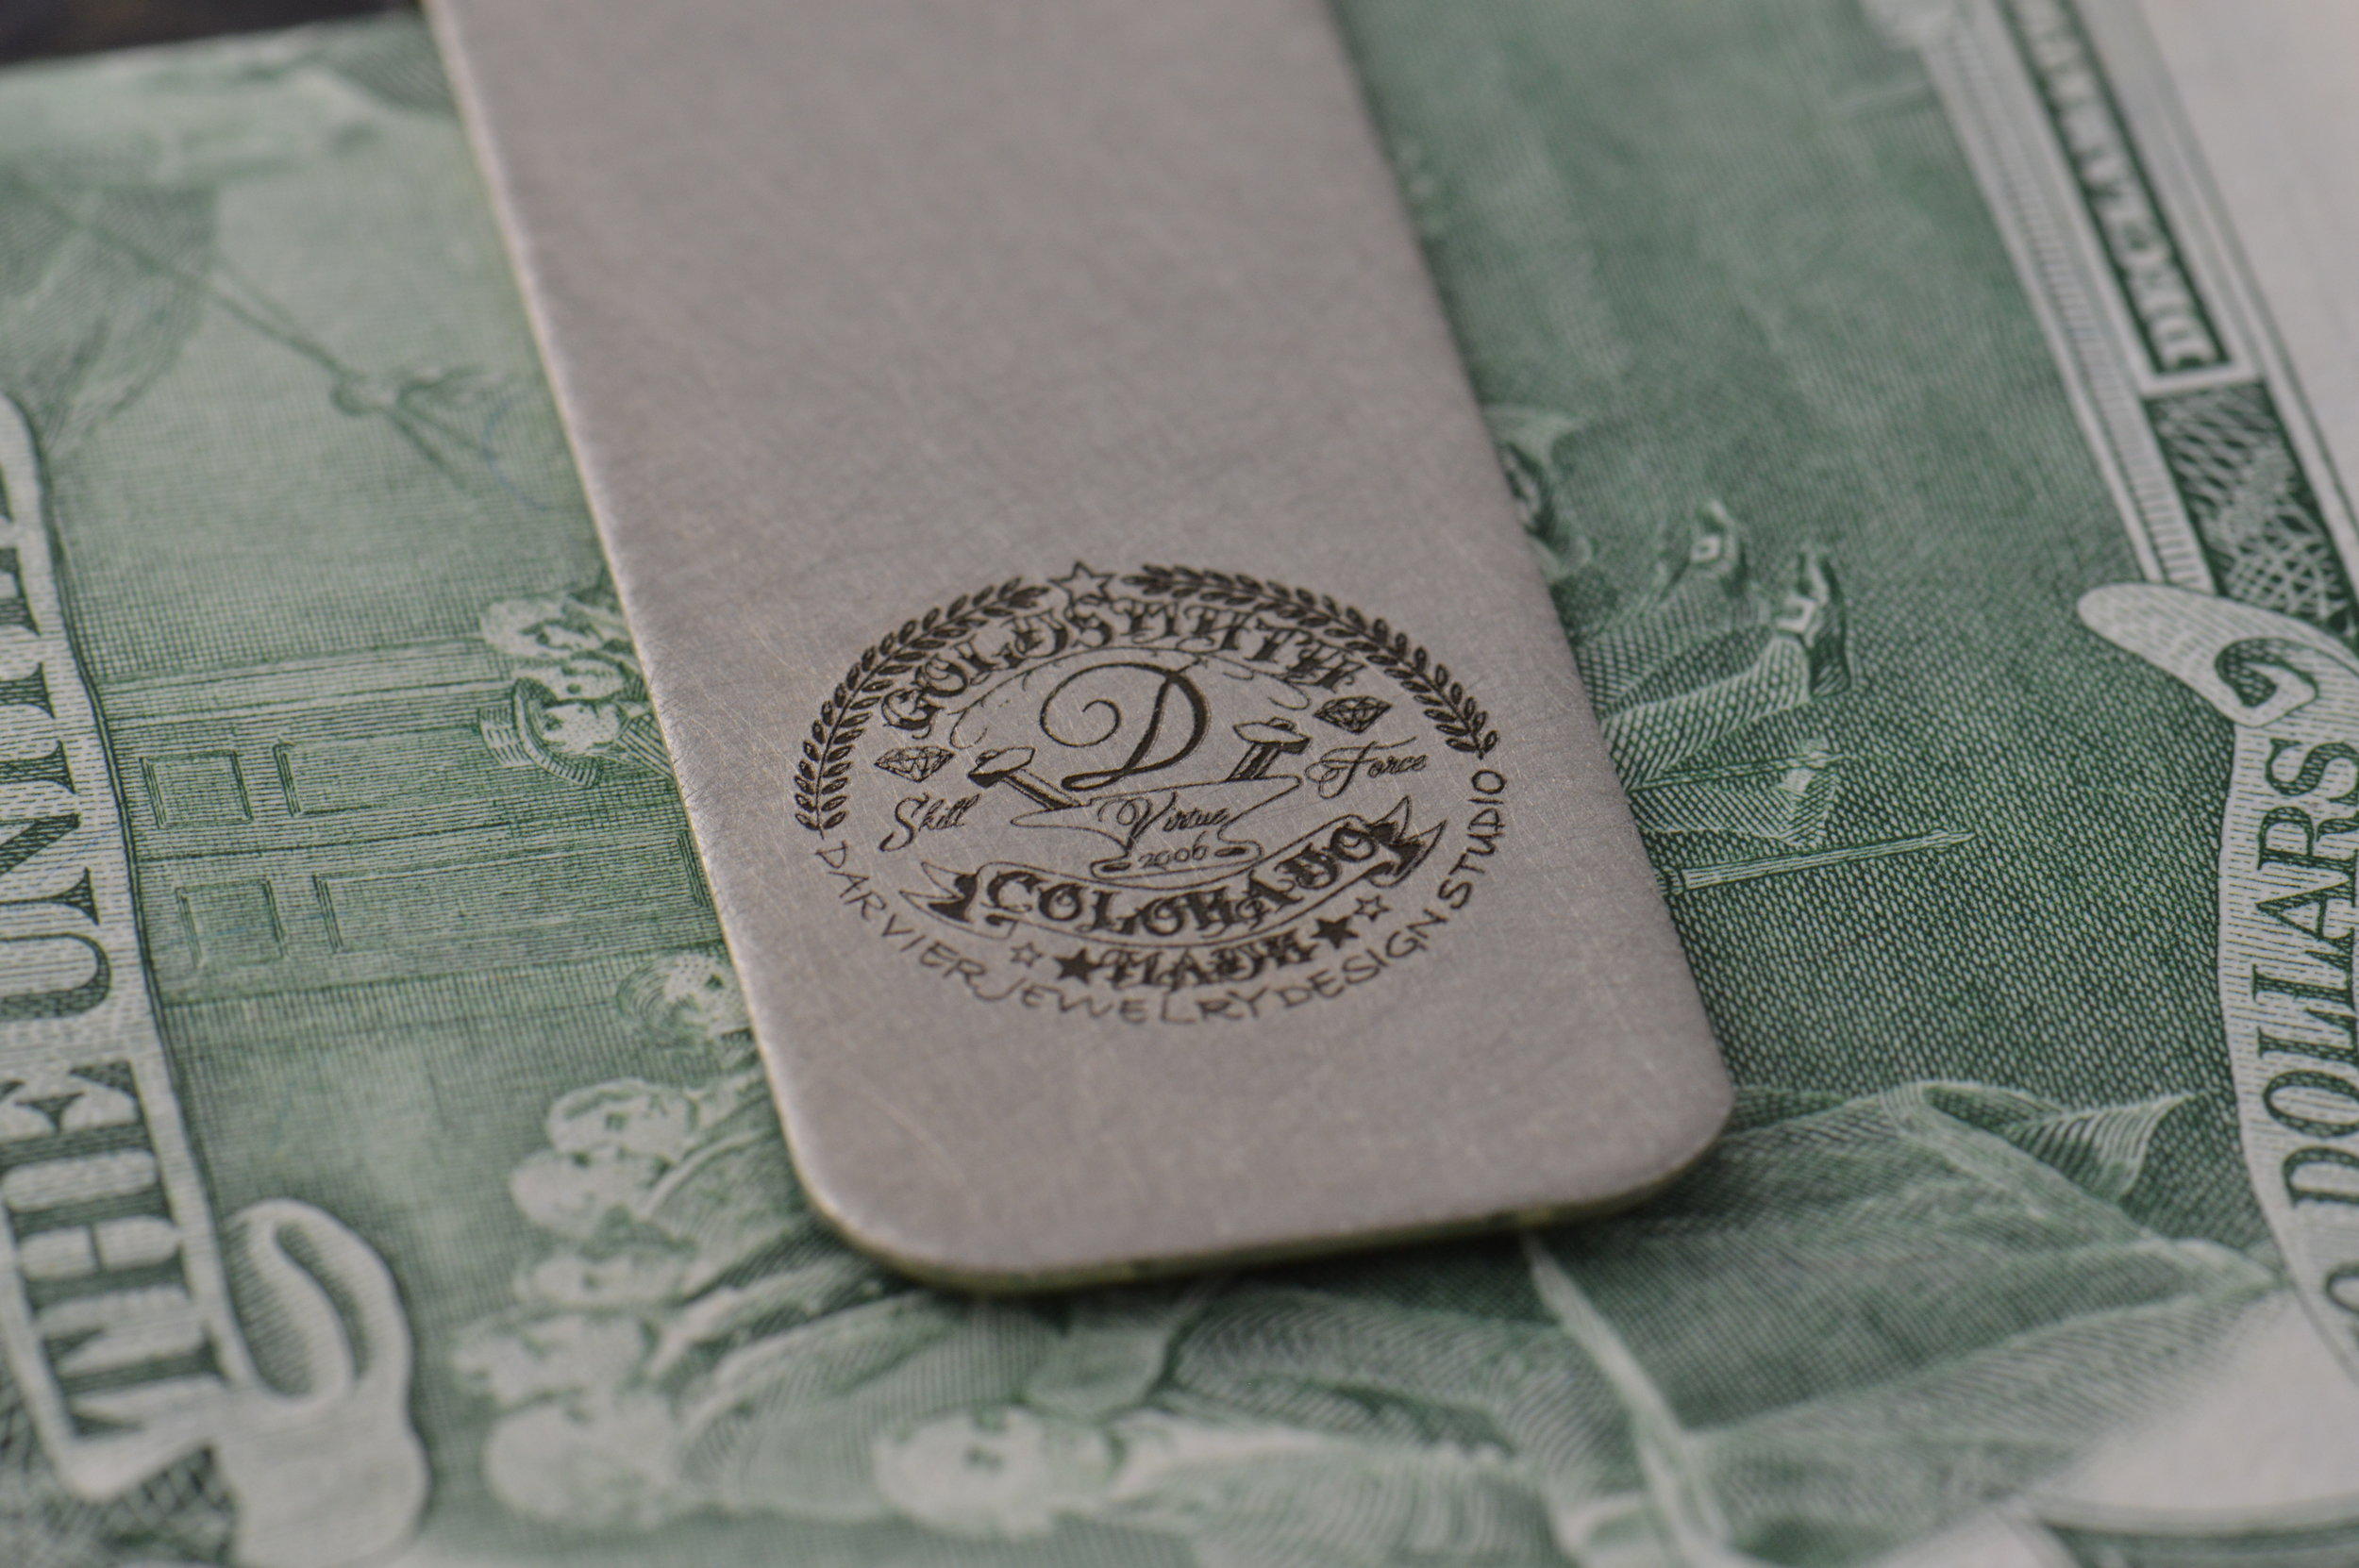 Darvier tattoo logo on a steel money clip illustrating a gift idea in our showroom.